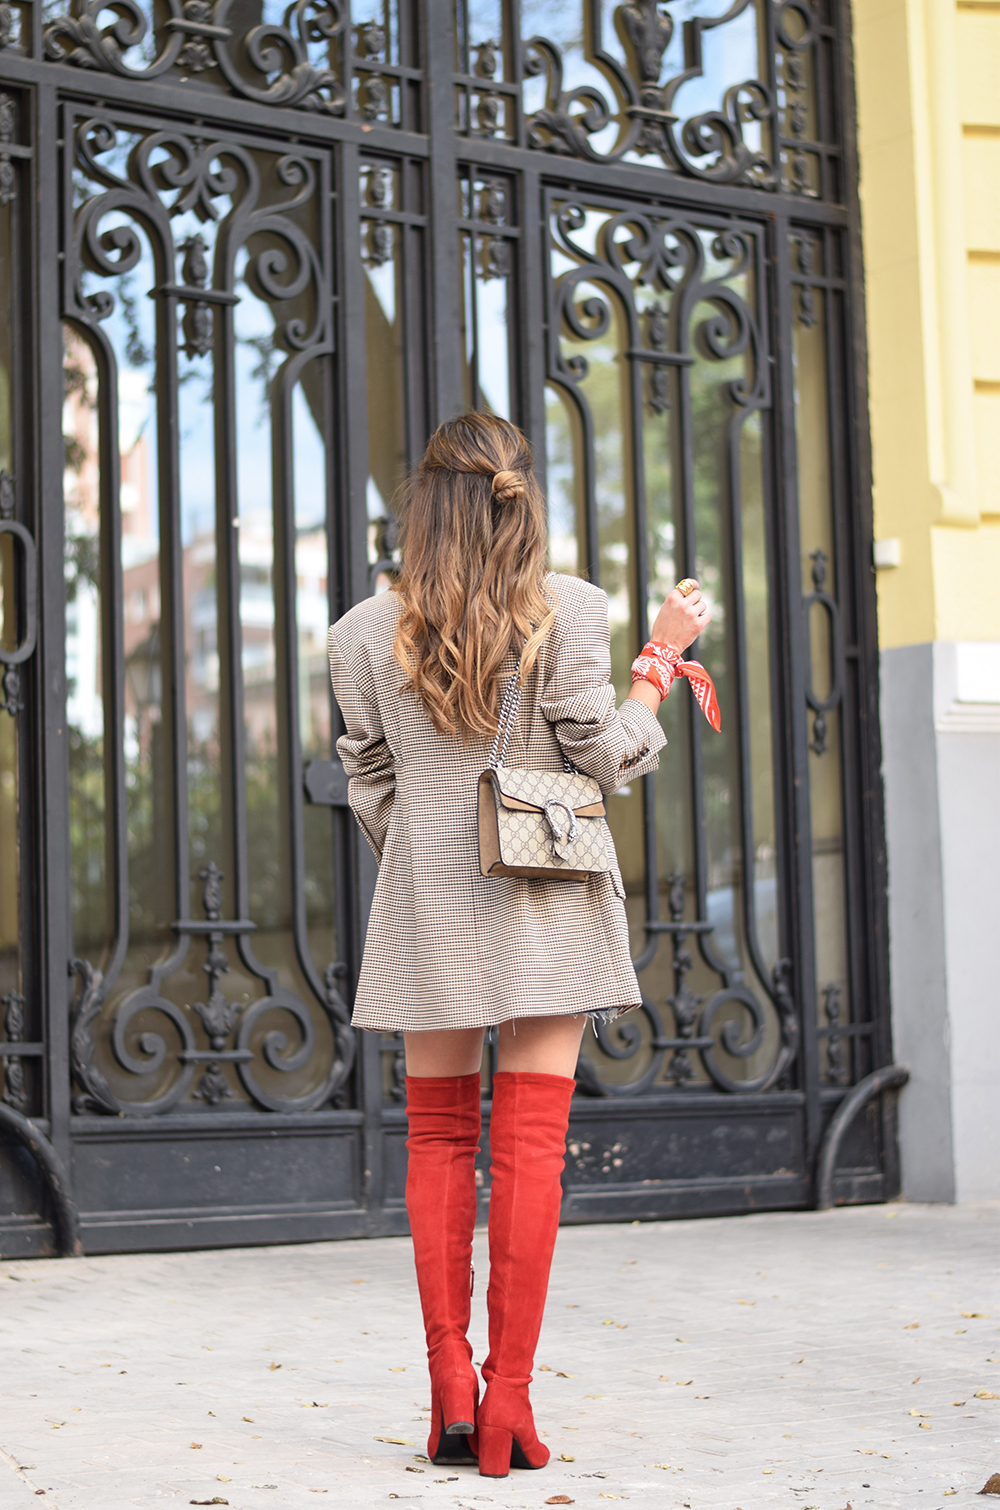 Houndstooth blazer denim skirt gucci bag red over the knee boots autumn outfit style fashion11